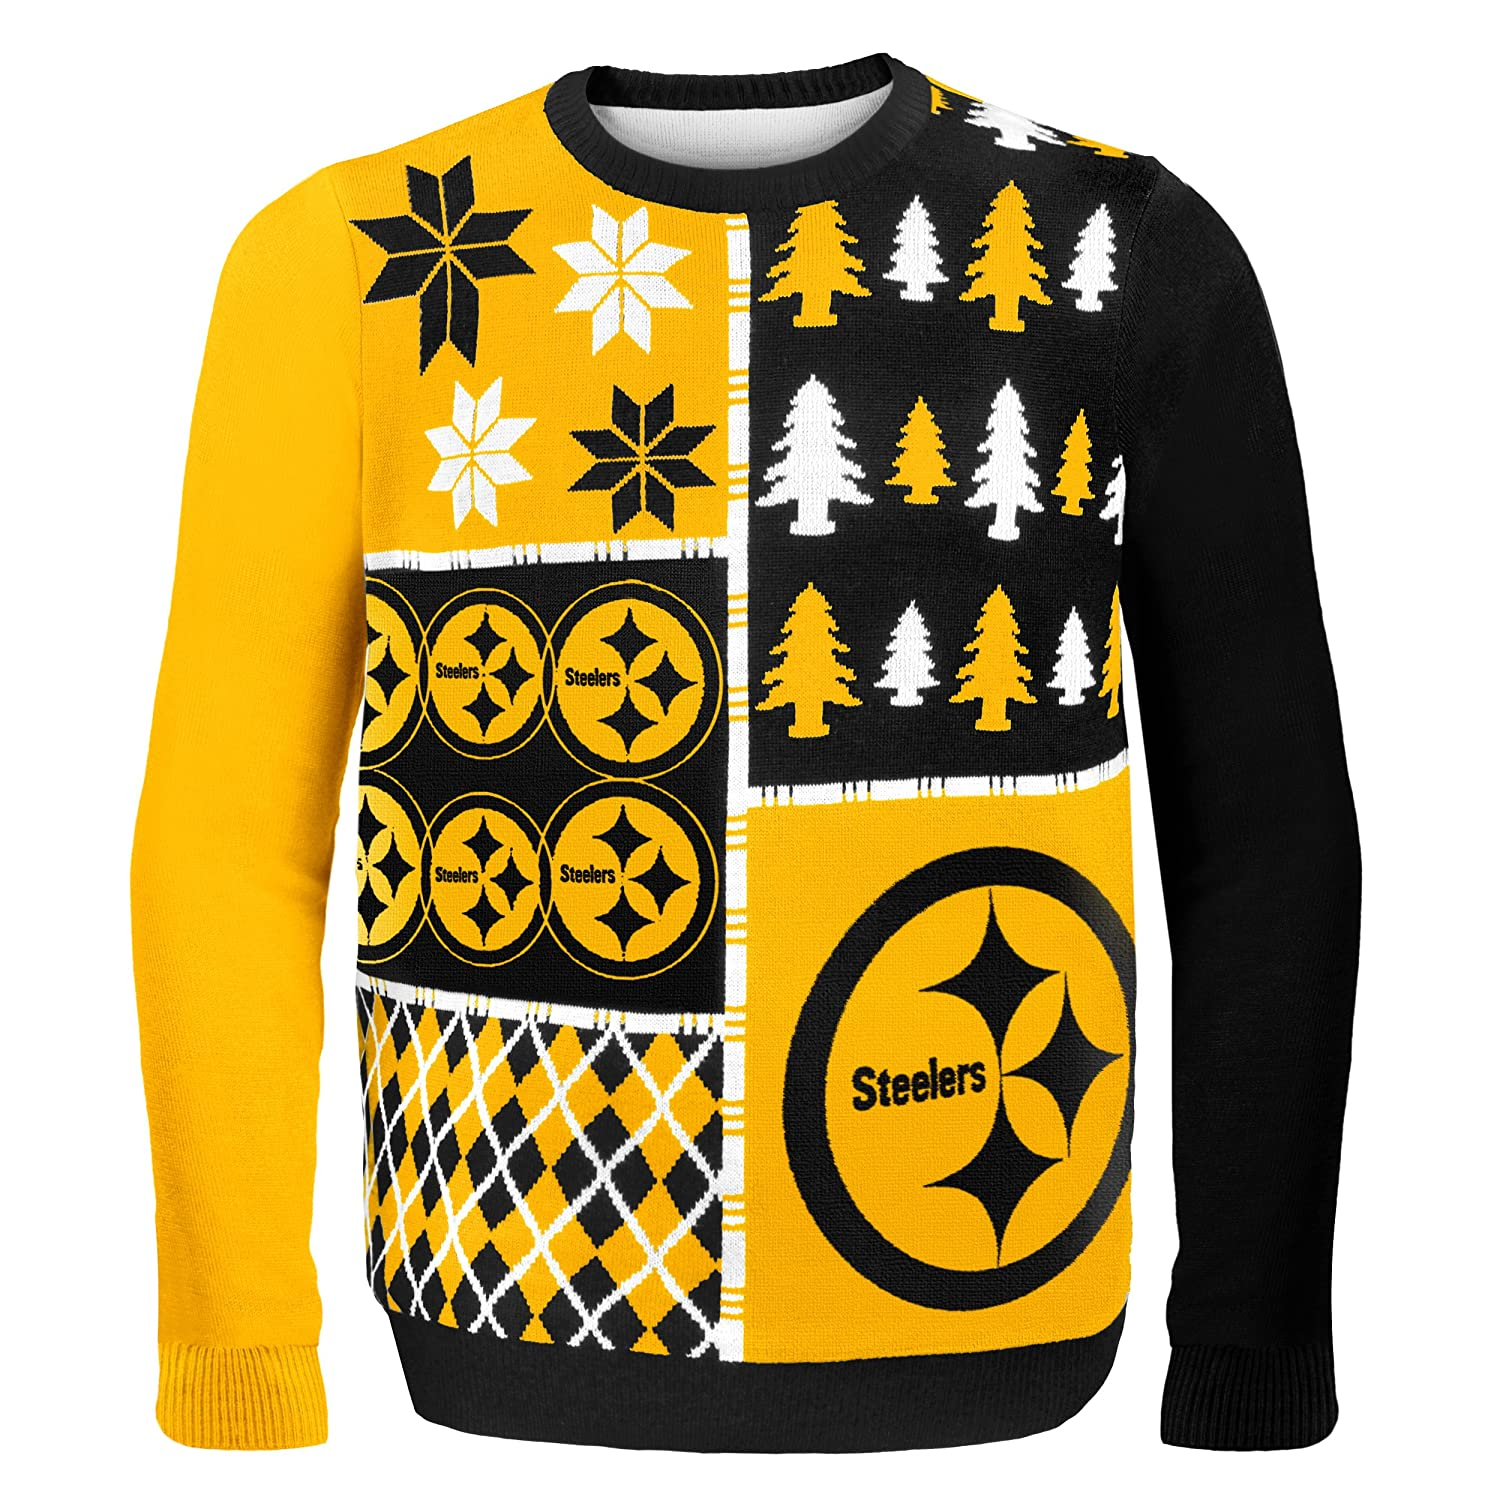 (Pittsburgh Steelers, X-Large) - NFL Busy Block Ugly Sweater   B00JSLKHWI